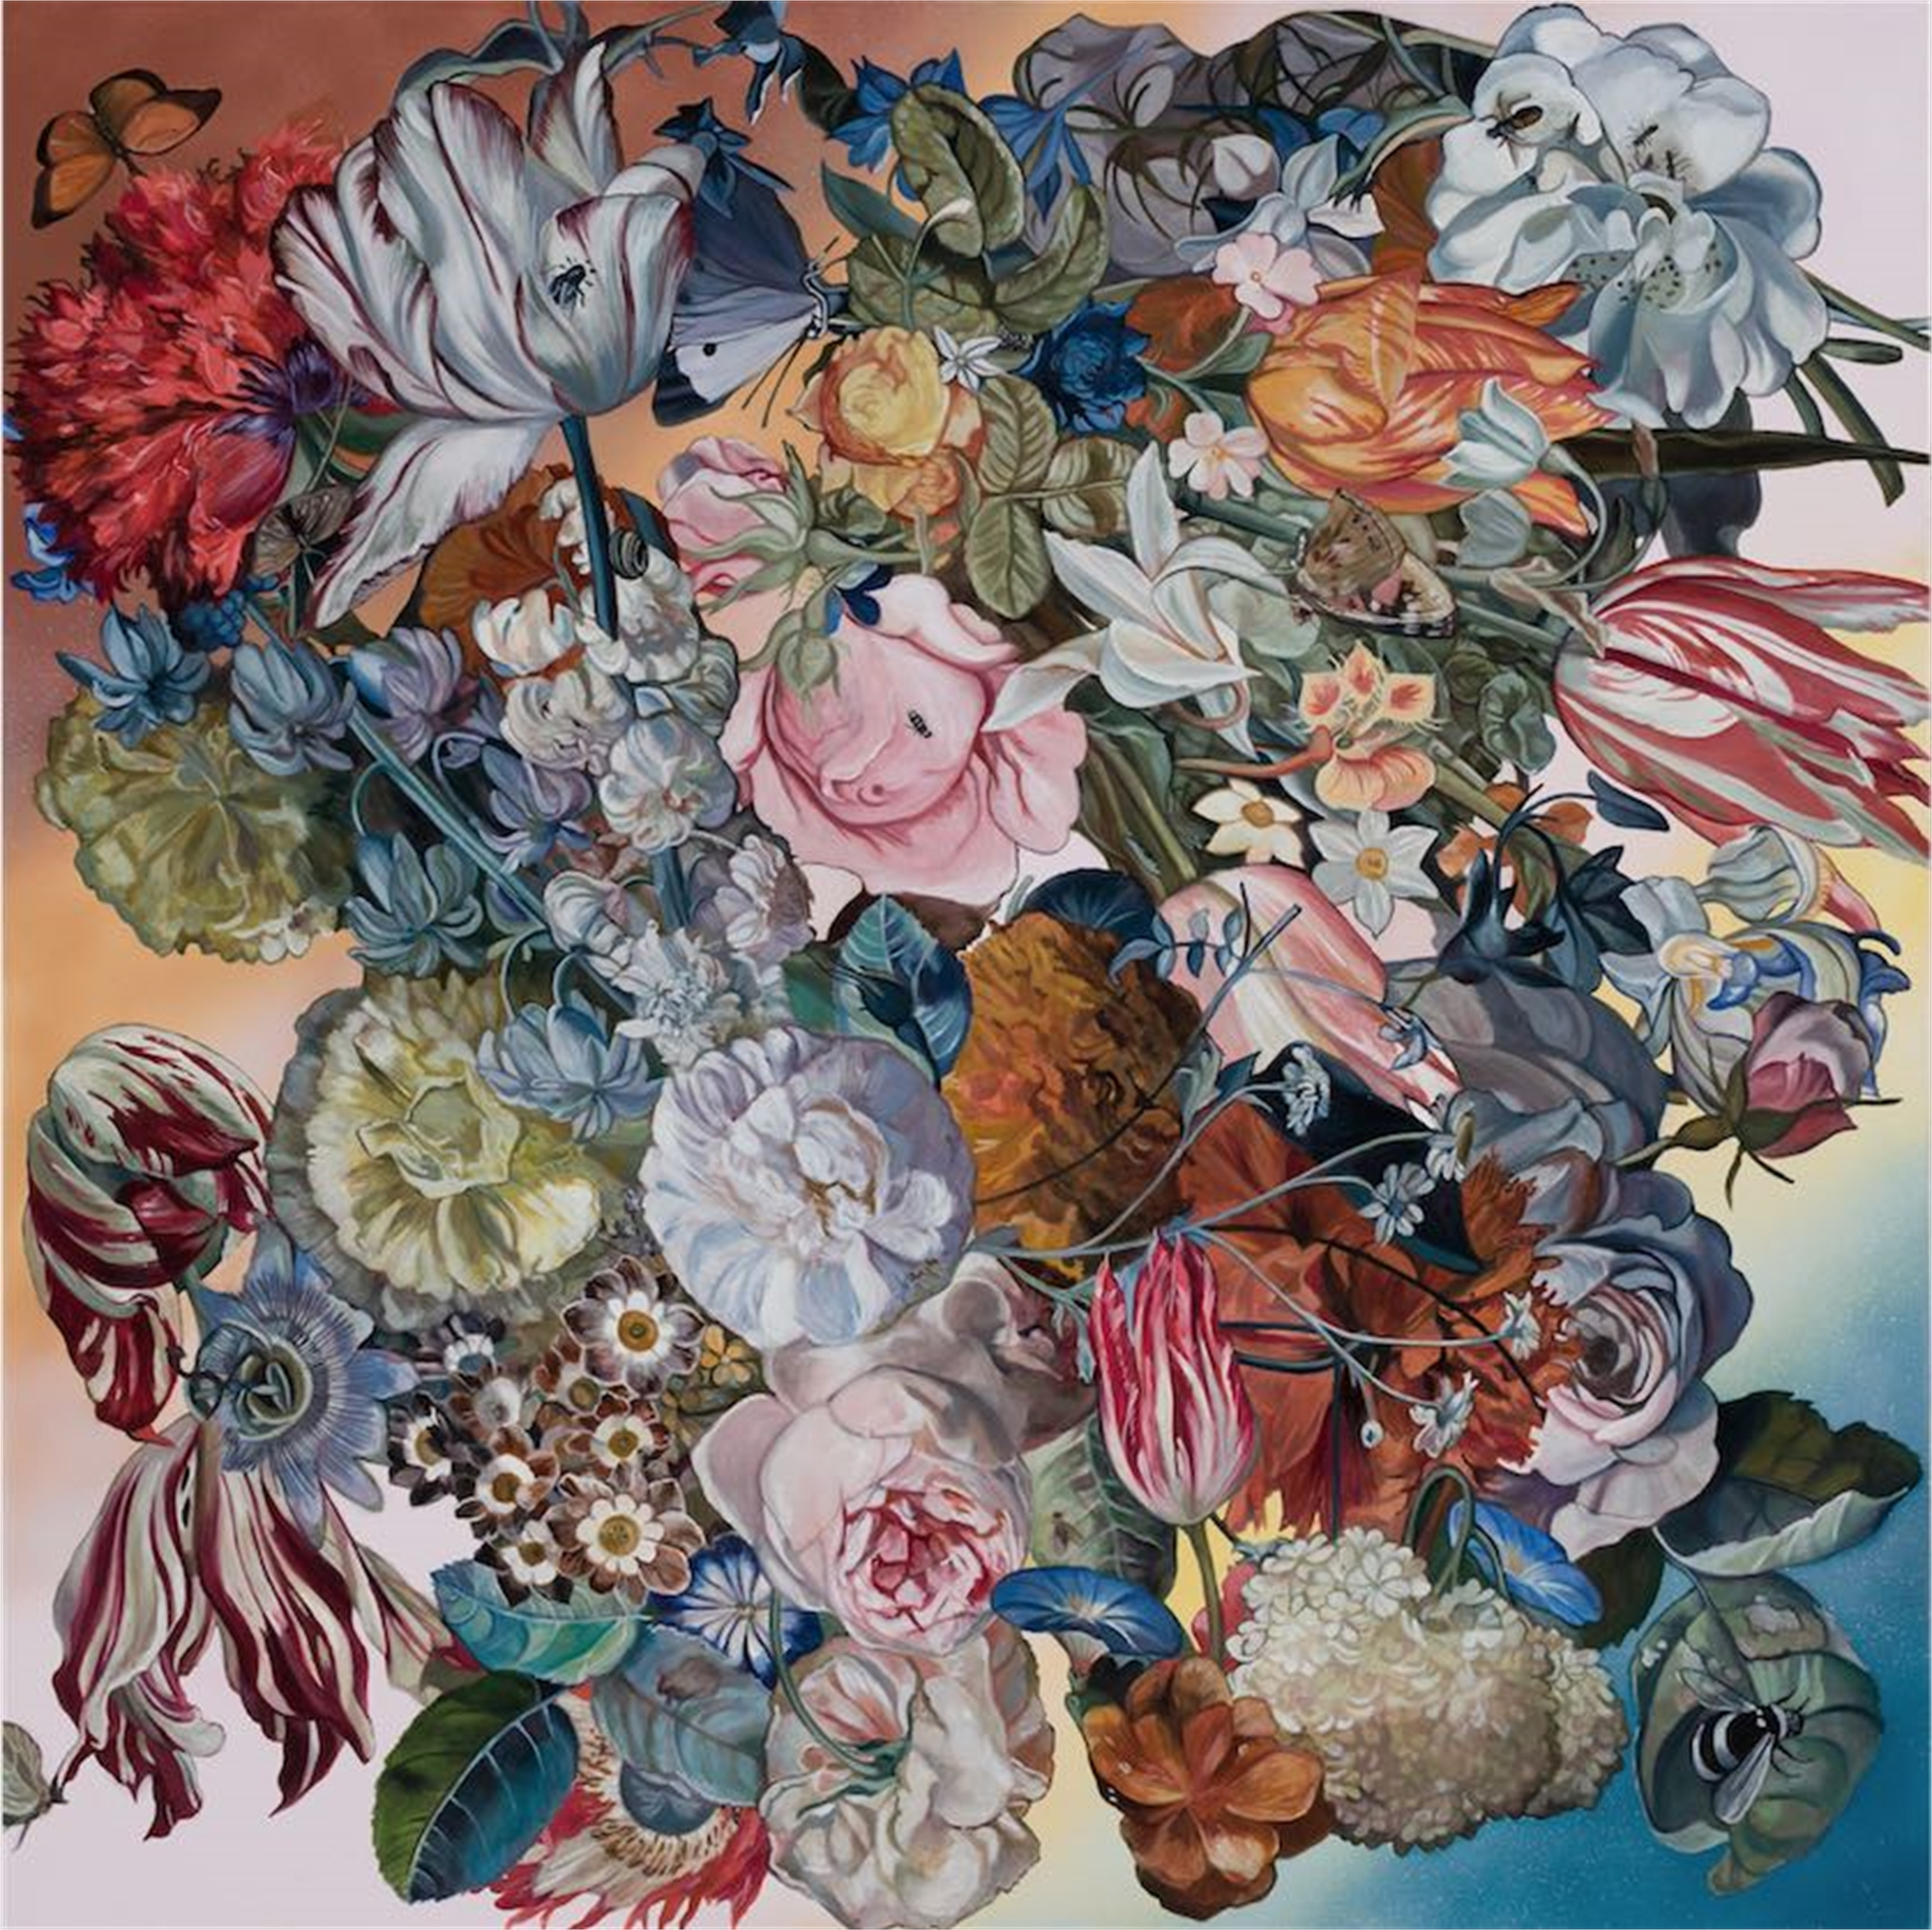 Late Bloomers by Melissa Furness